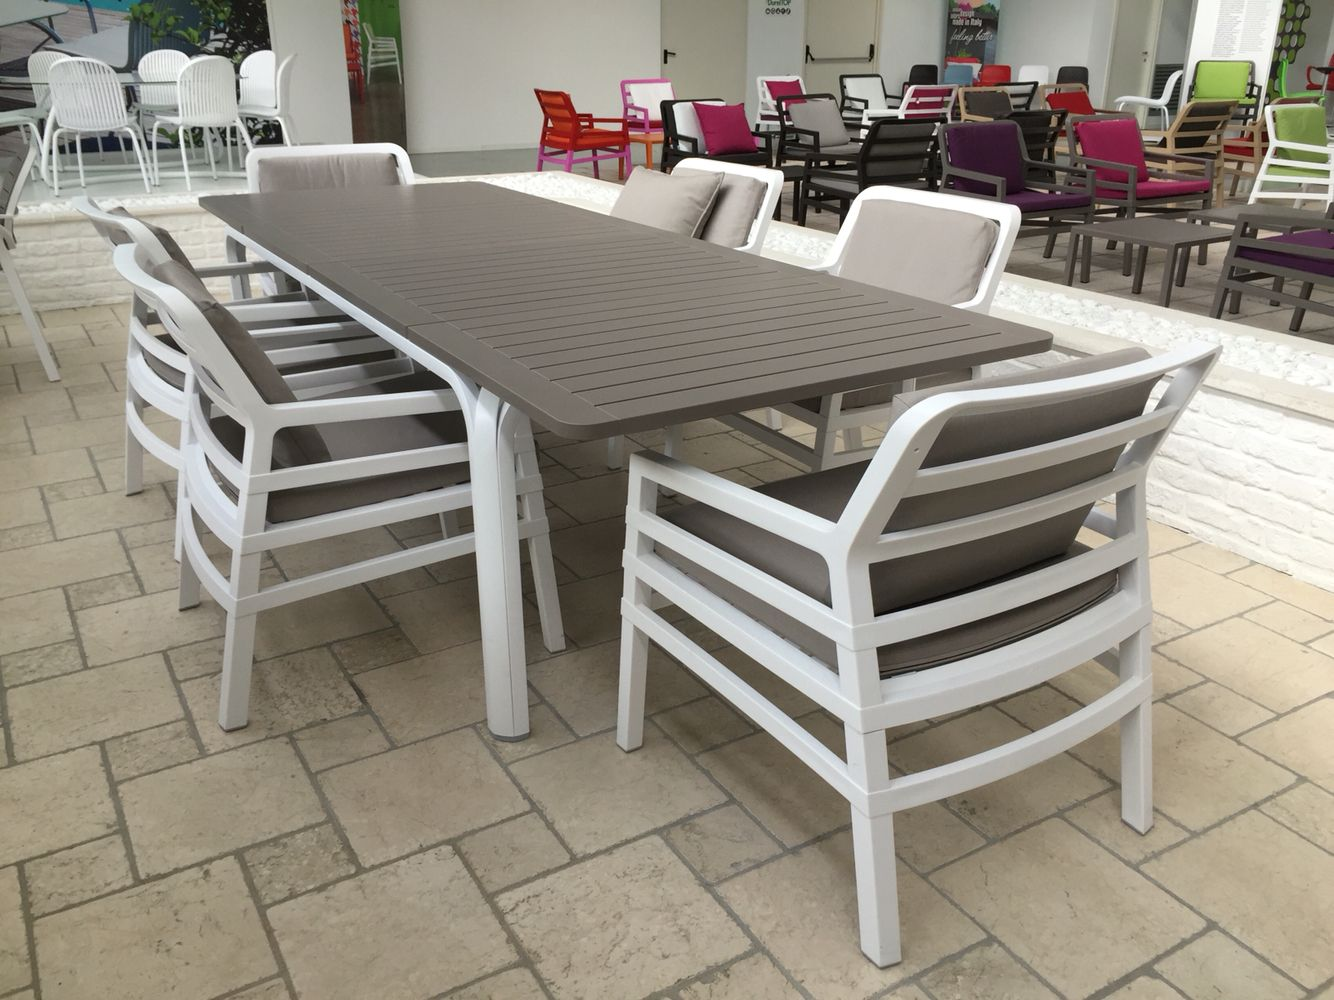 Superbe Nardi Alloro 210 280 Extension Table With Aria Chairs Backyard Furniture, Outdoor  Furniture,